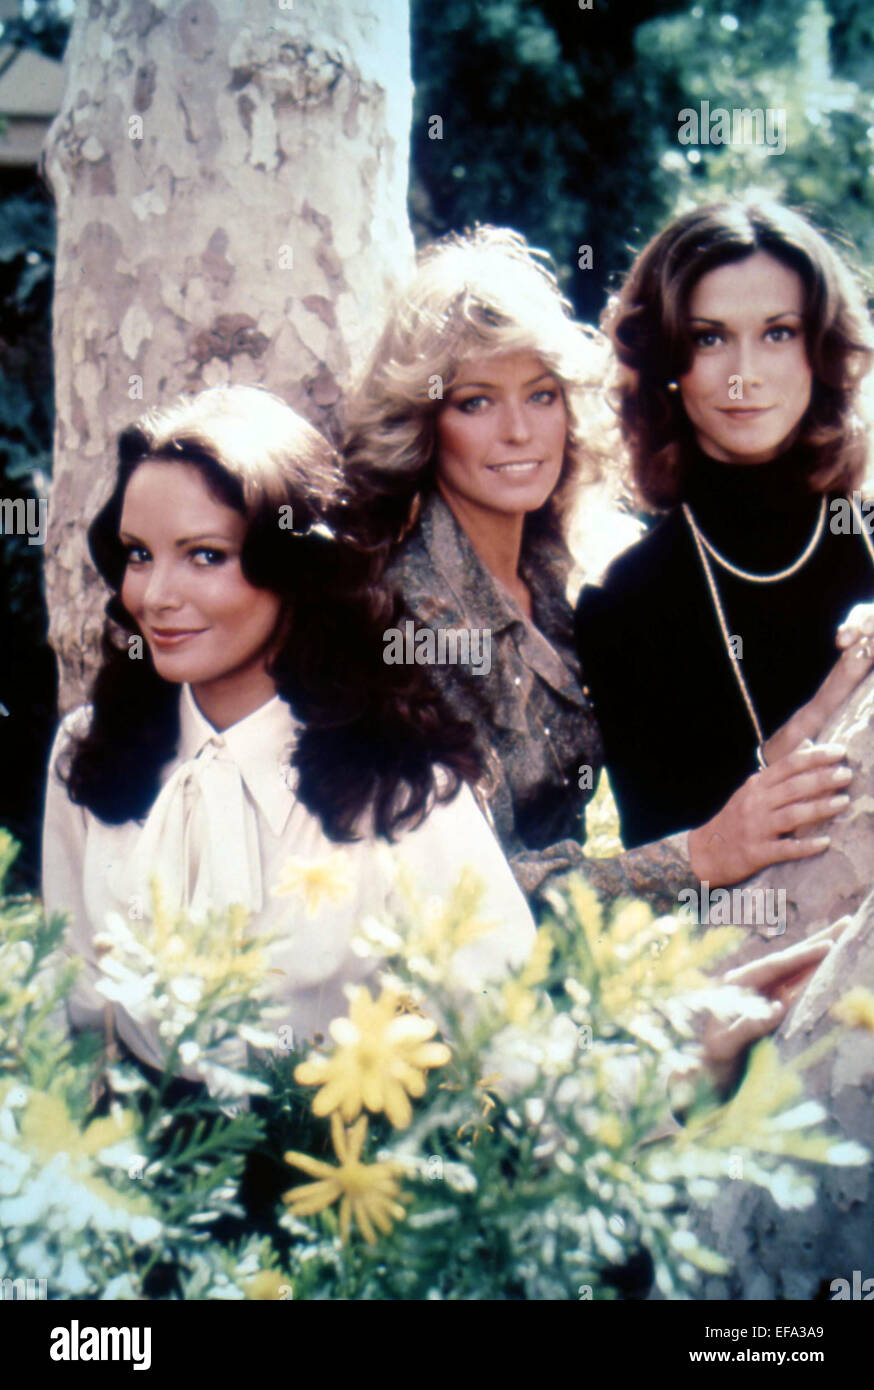 JACLYN SMITH, FARRAH FAWCETT, KATE JACKSON, CHARLIE'S ANGELS, 1976 - Stock Image